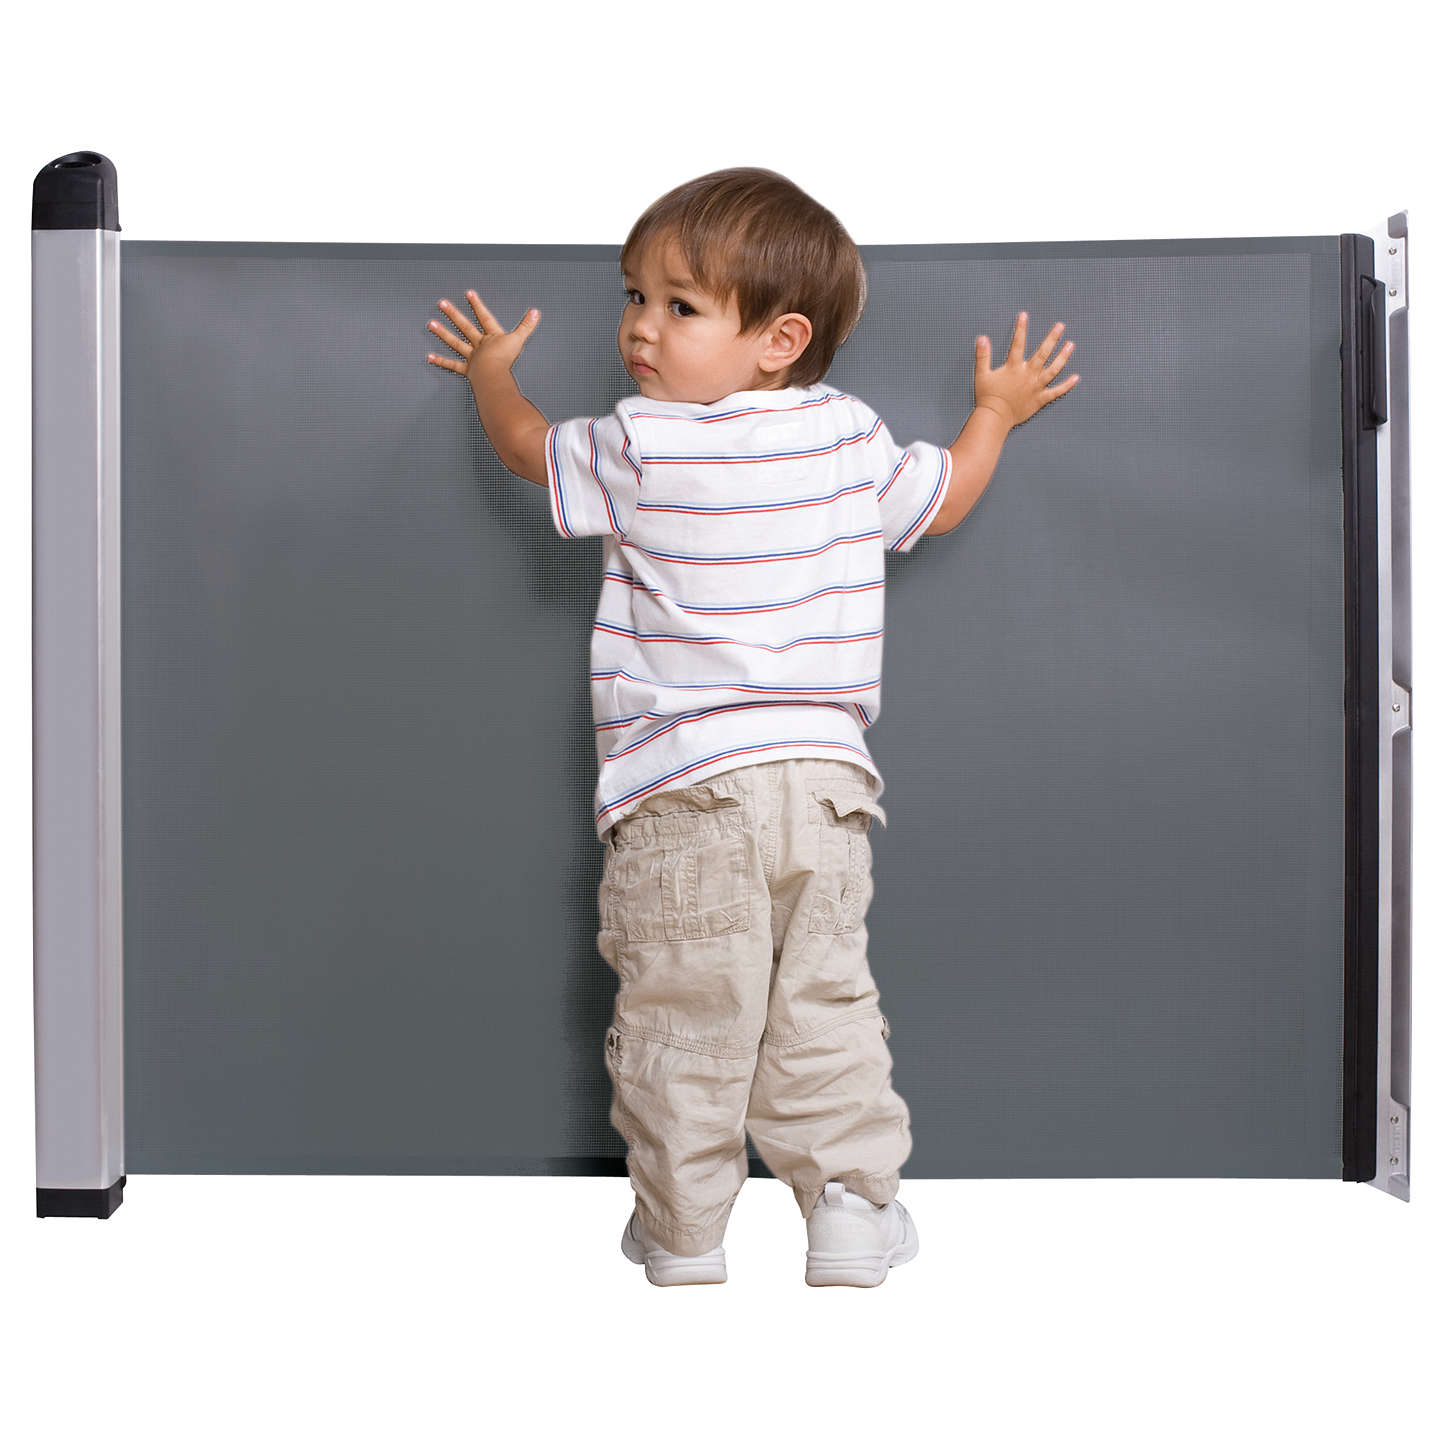 Lascal Kiddyguard Avant Safety Baby Gate at John Lewis